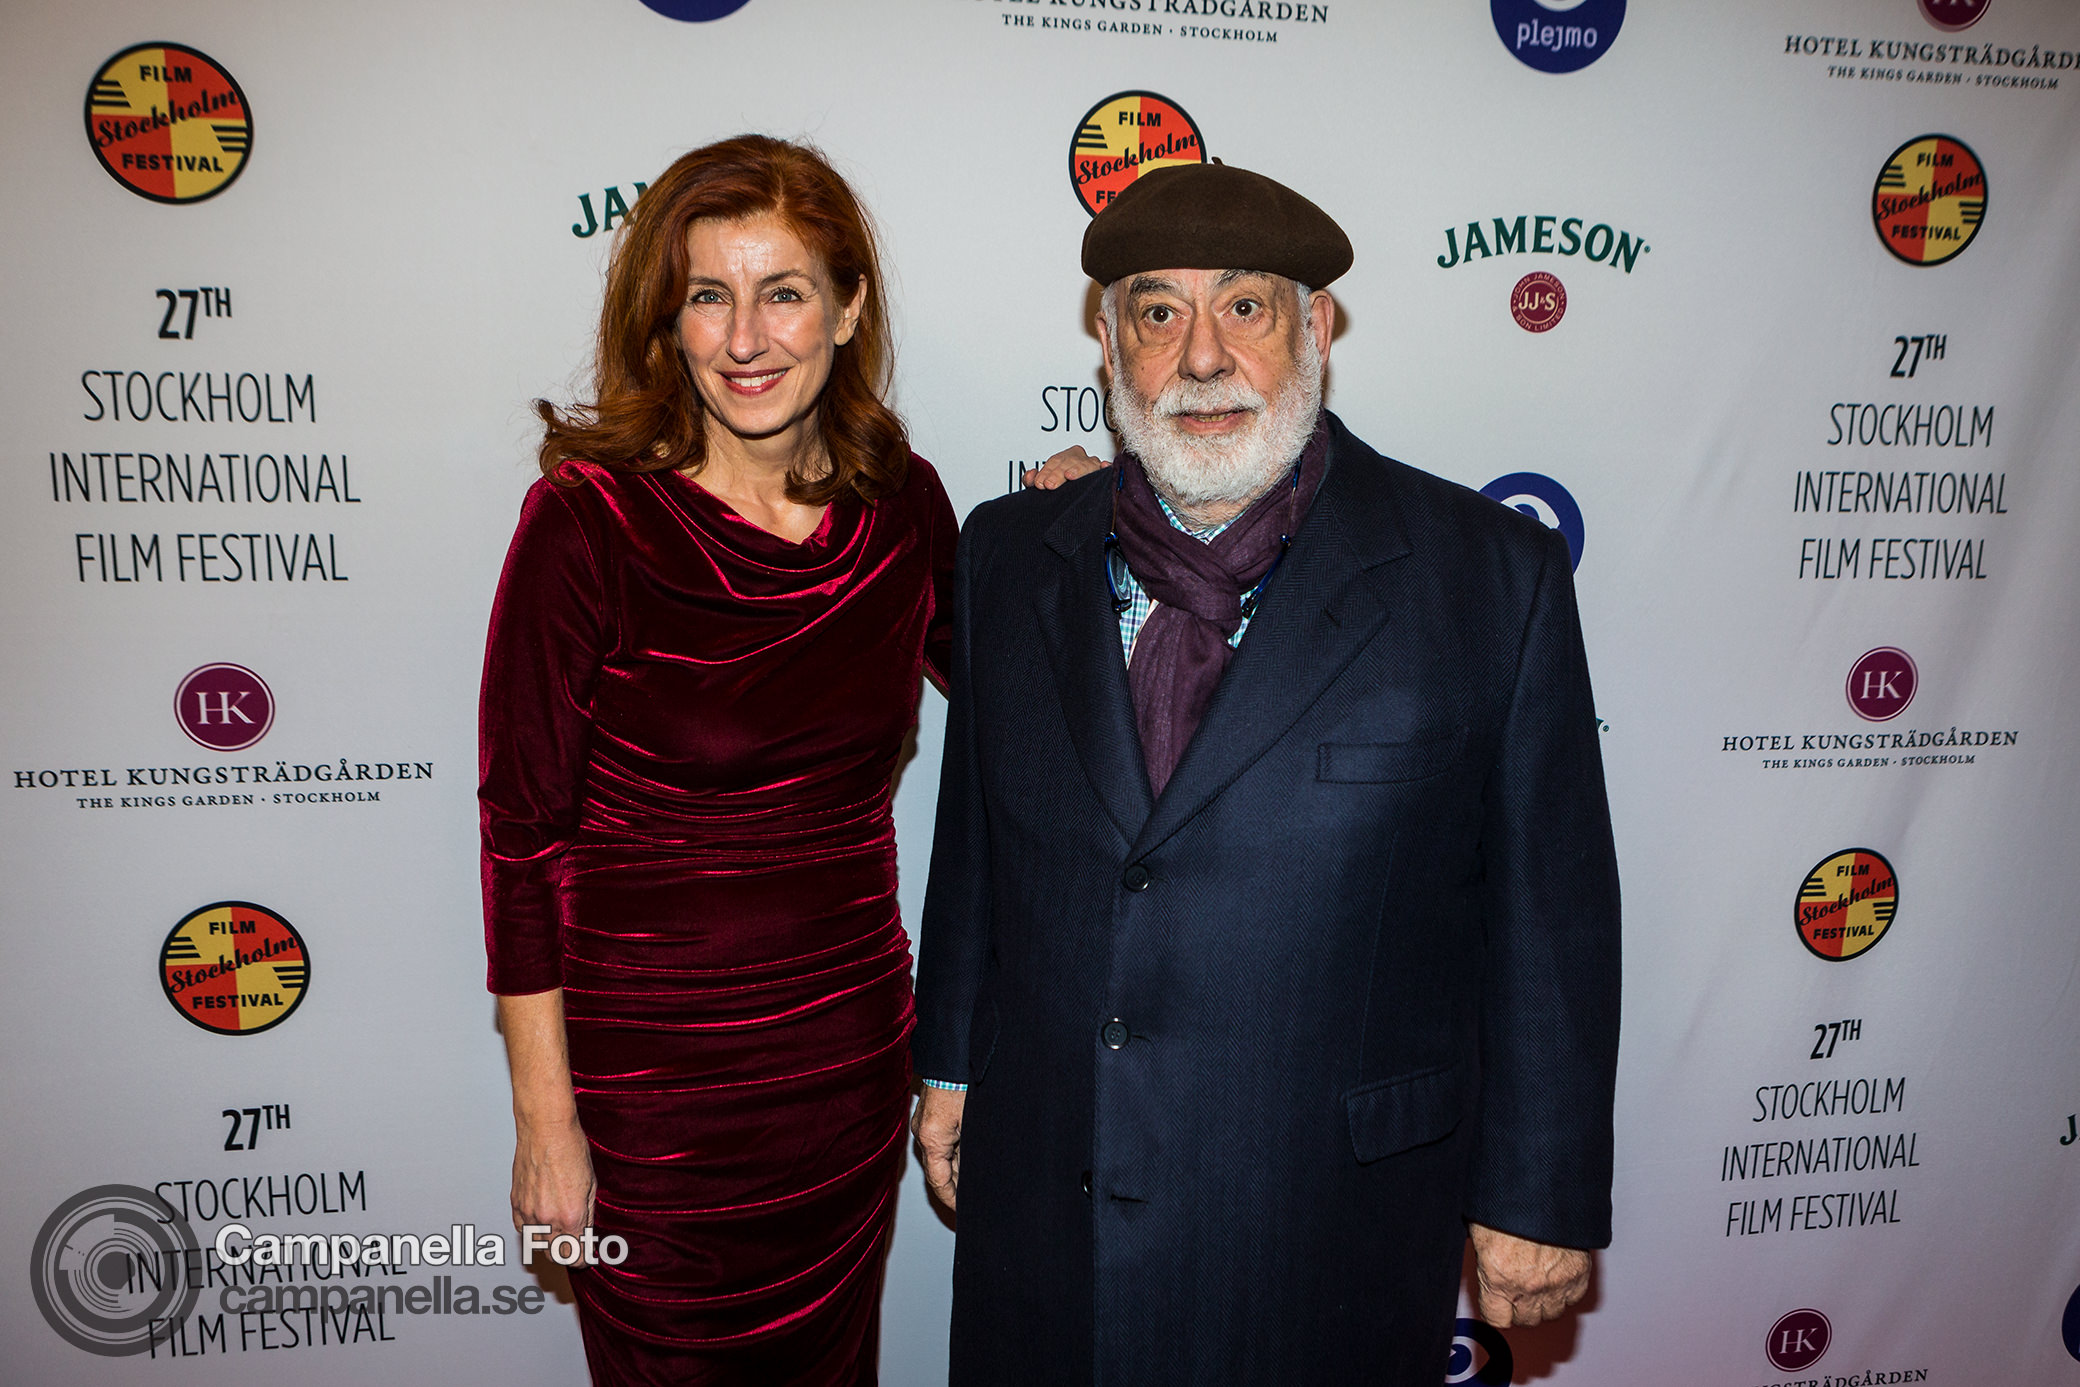 Francis Ford Coppola visits Stockholm - Michael Campanella Photography